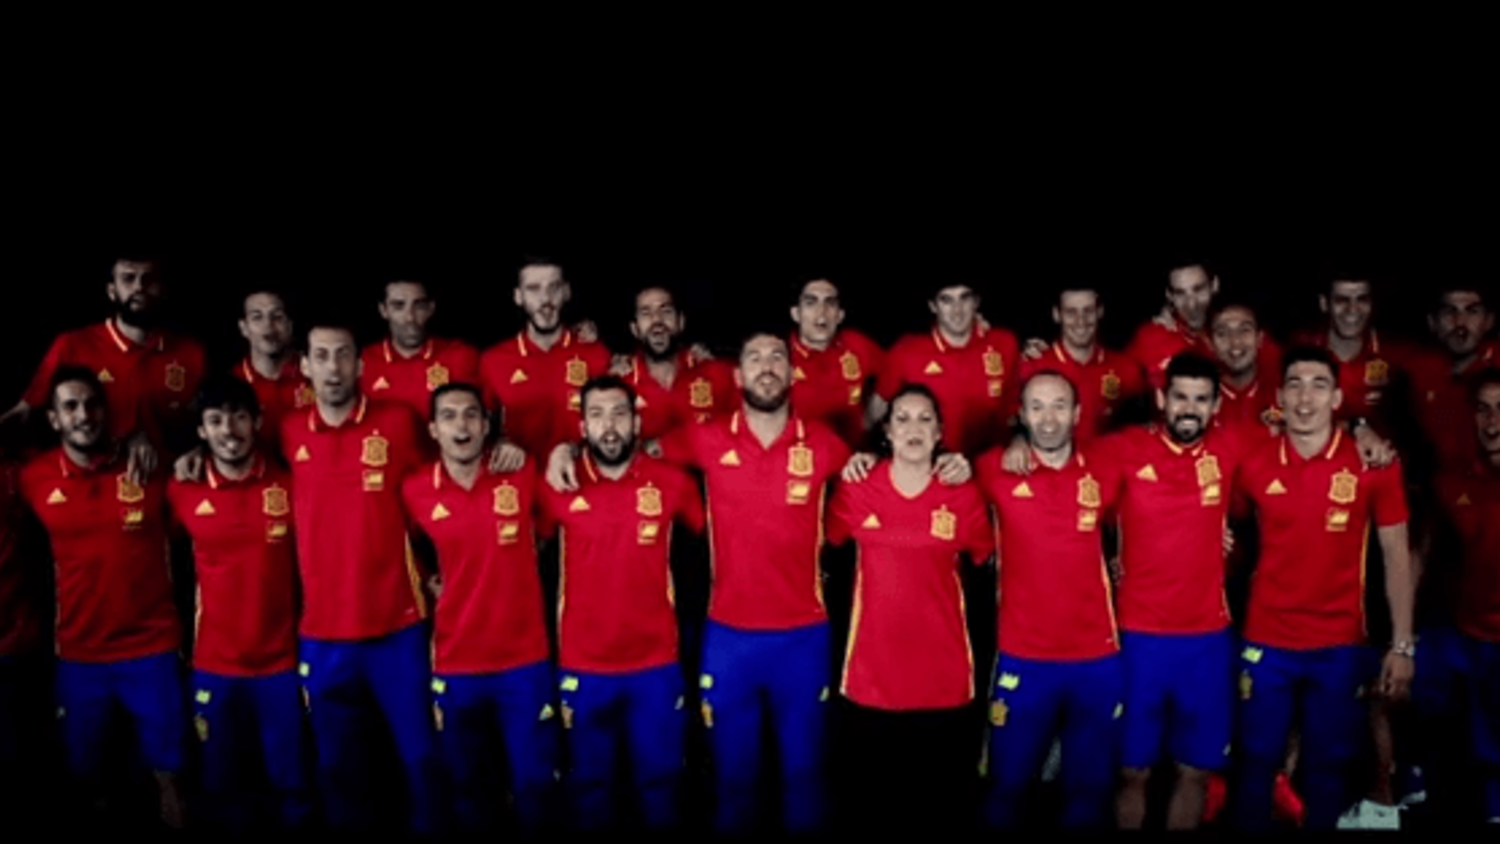 Sergio Ramos leads Spain's Euro 2016 song and it's hilariously fantastic